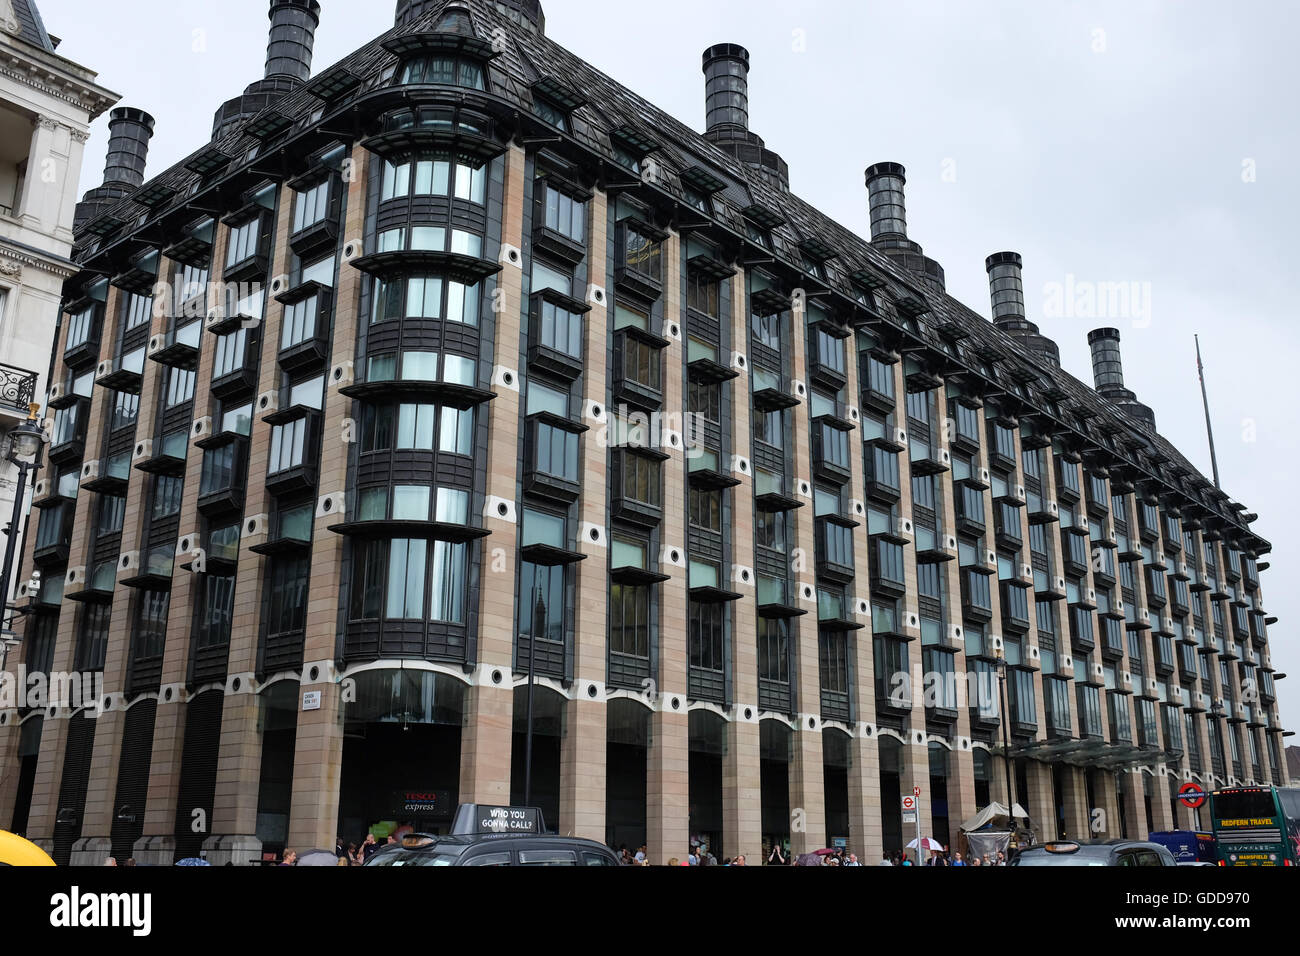 Portcullis House in Westminster, London, England. - Stock Image